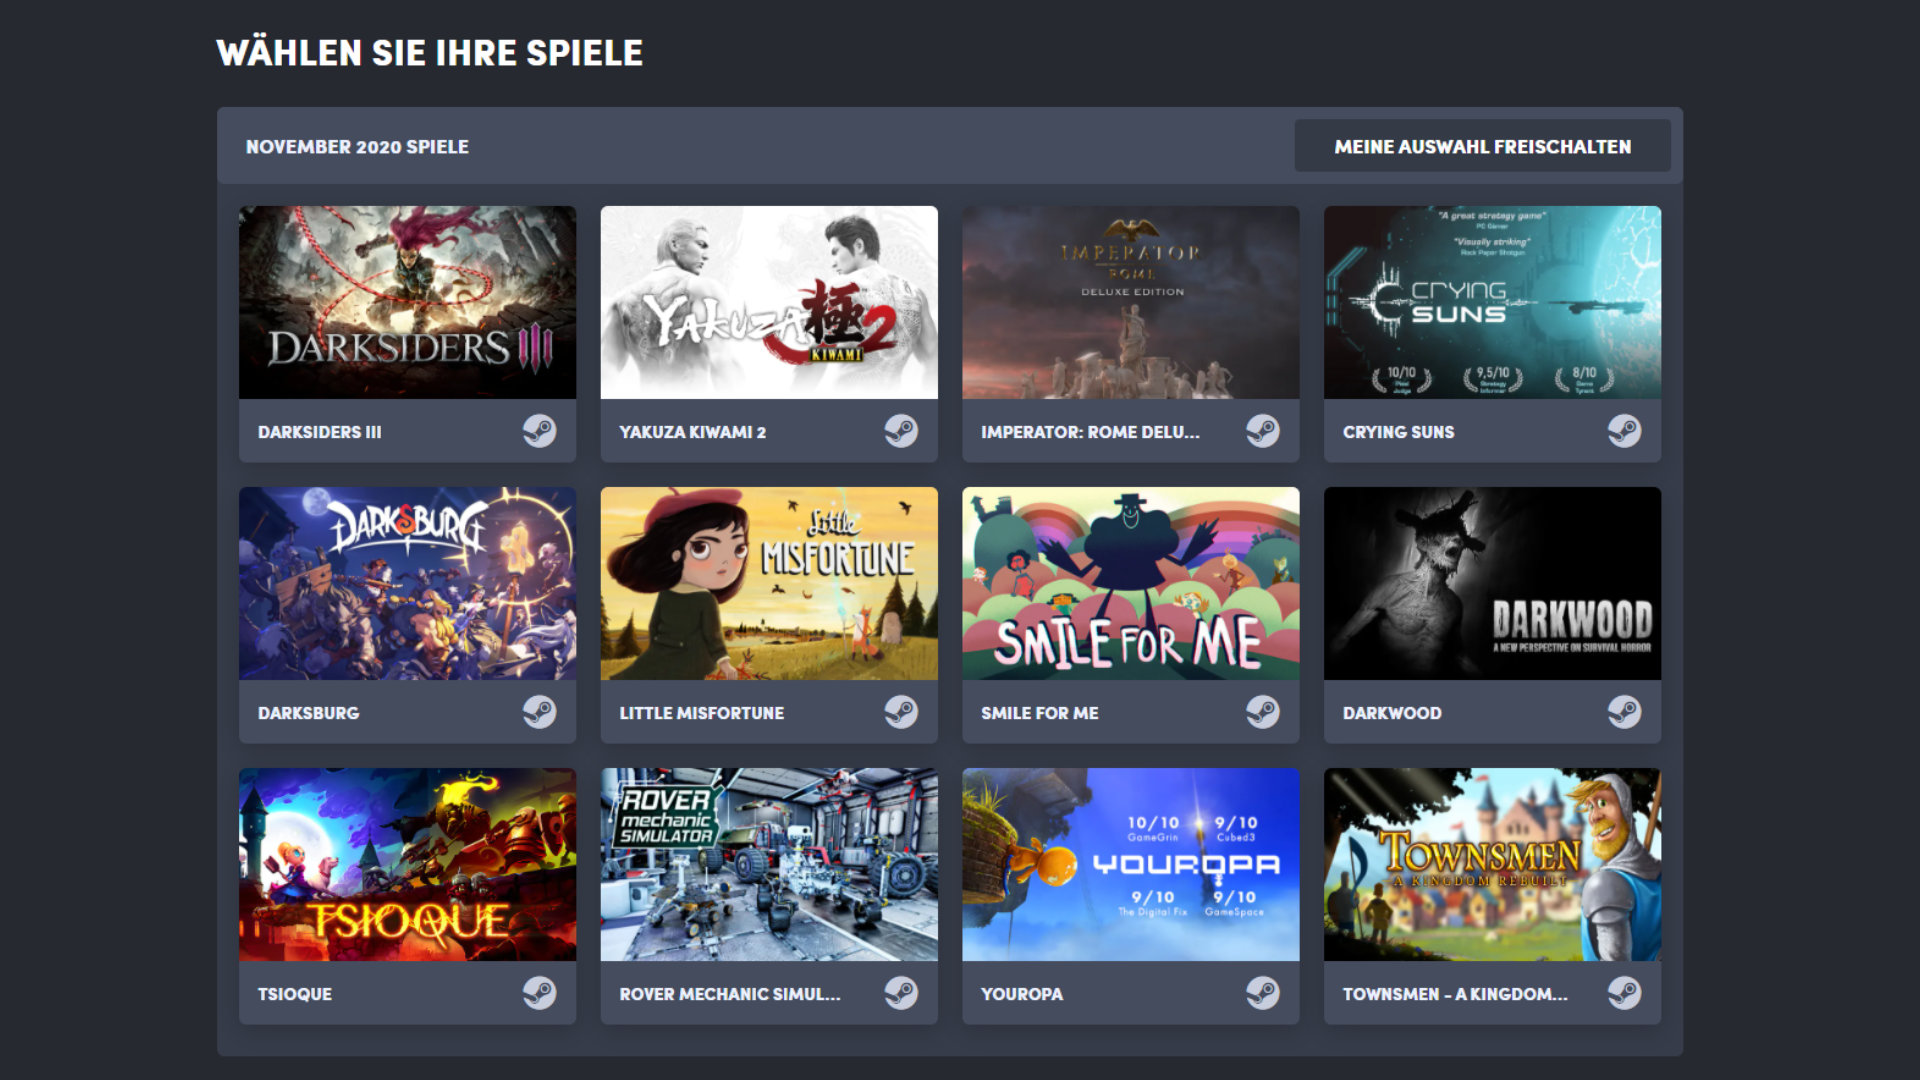 Quelle: Humble Bundle (Choice) - November 2020 Auswahl